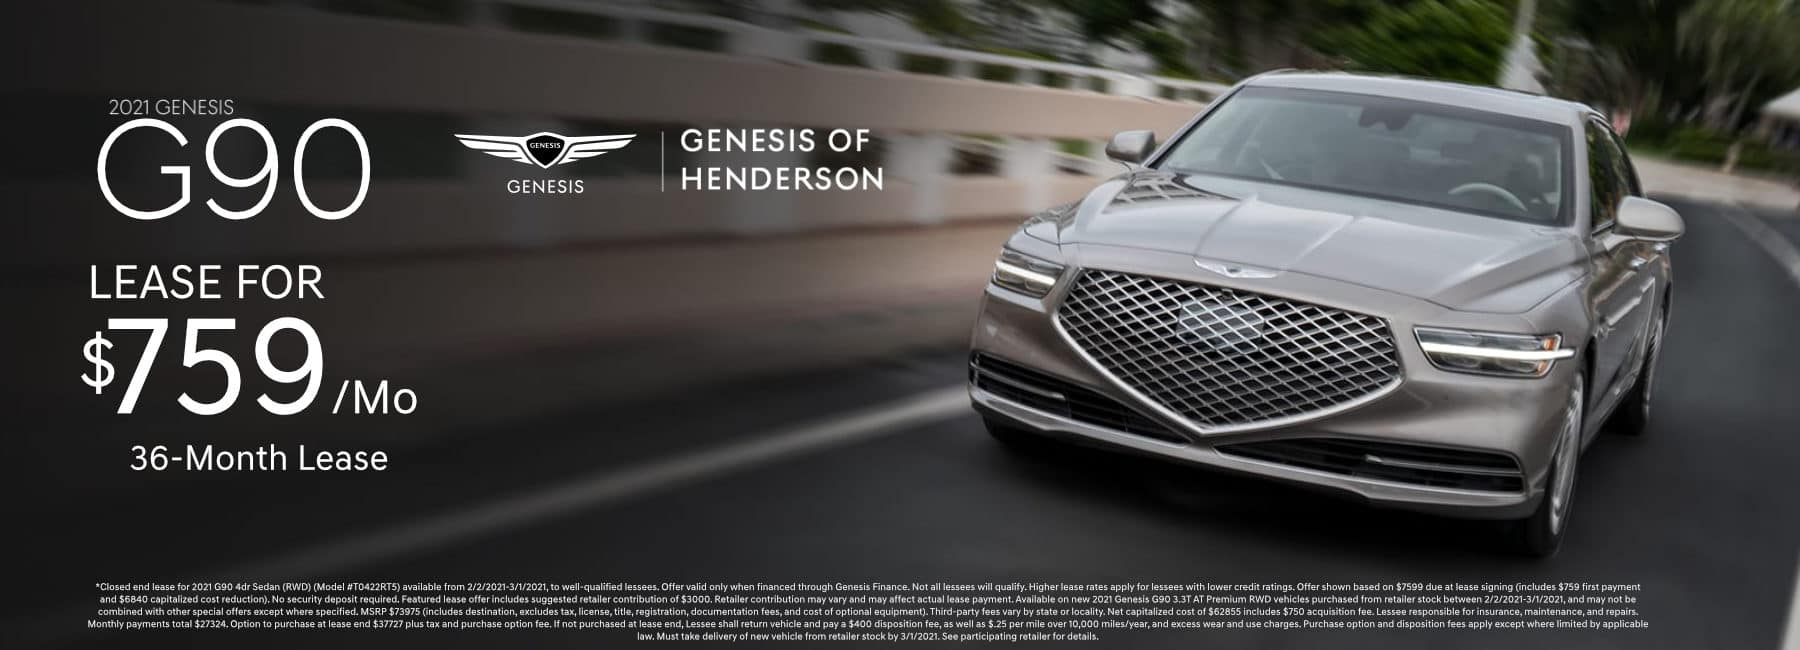 Revised_February_2021 Genesis_G90 Lease Genesis of Henderson